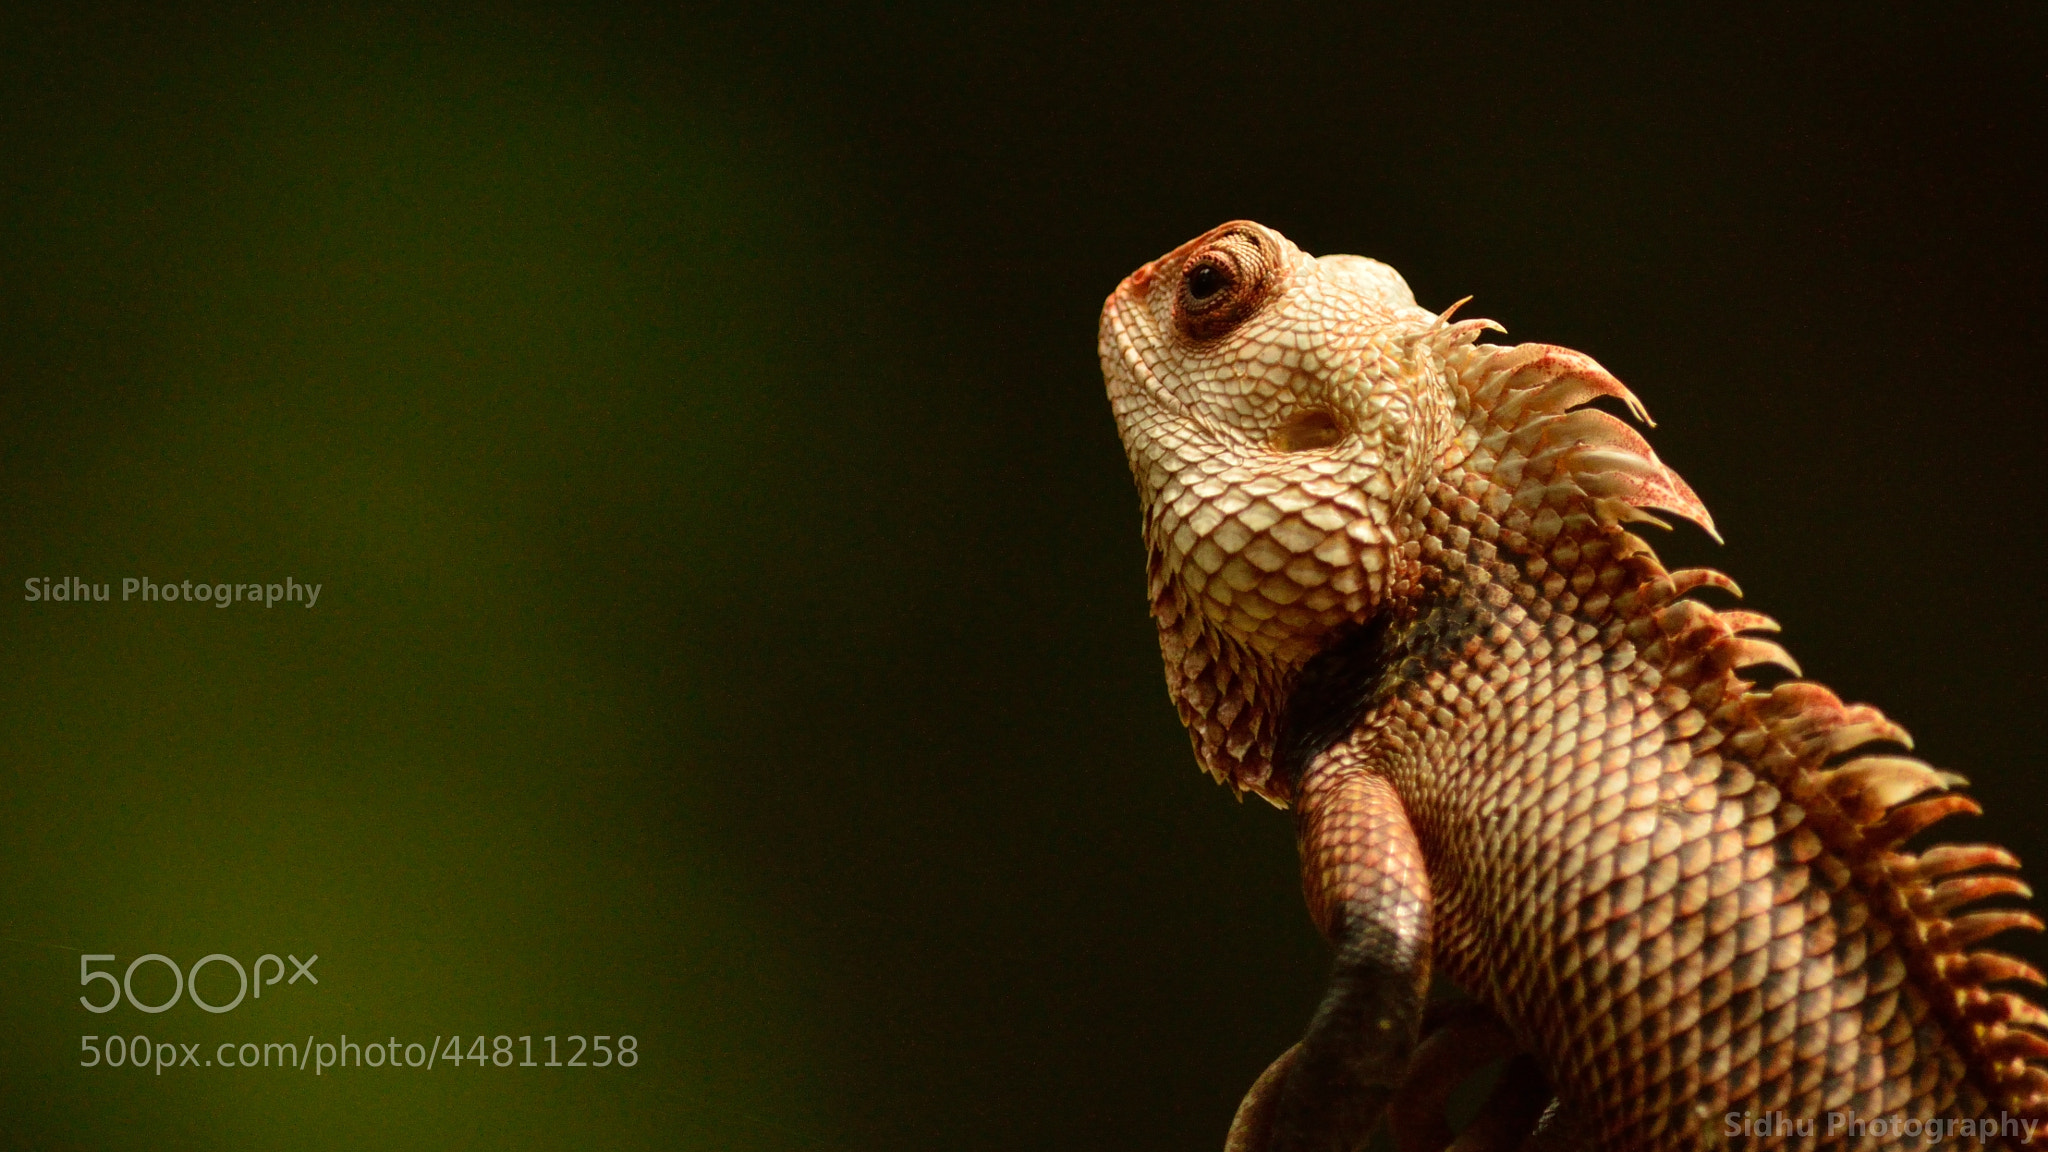 Photograph Sharp Look by Arun Siddharth on 500px